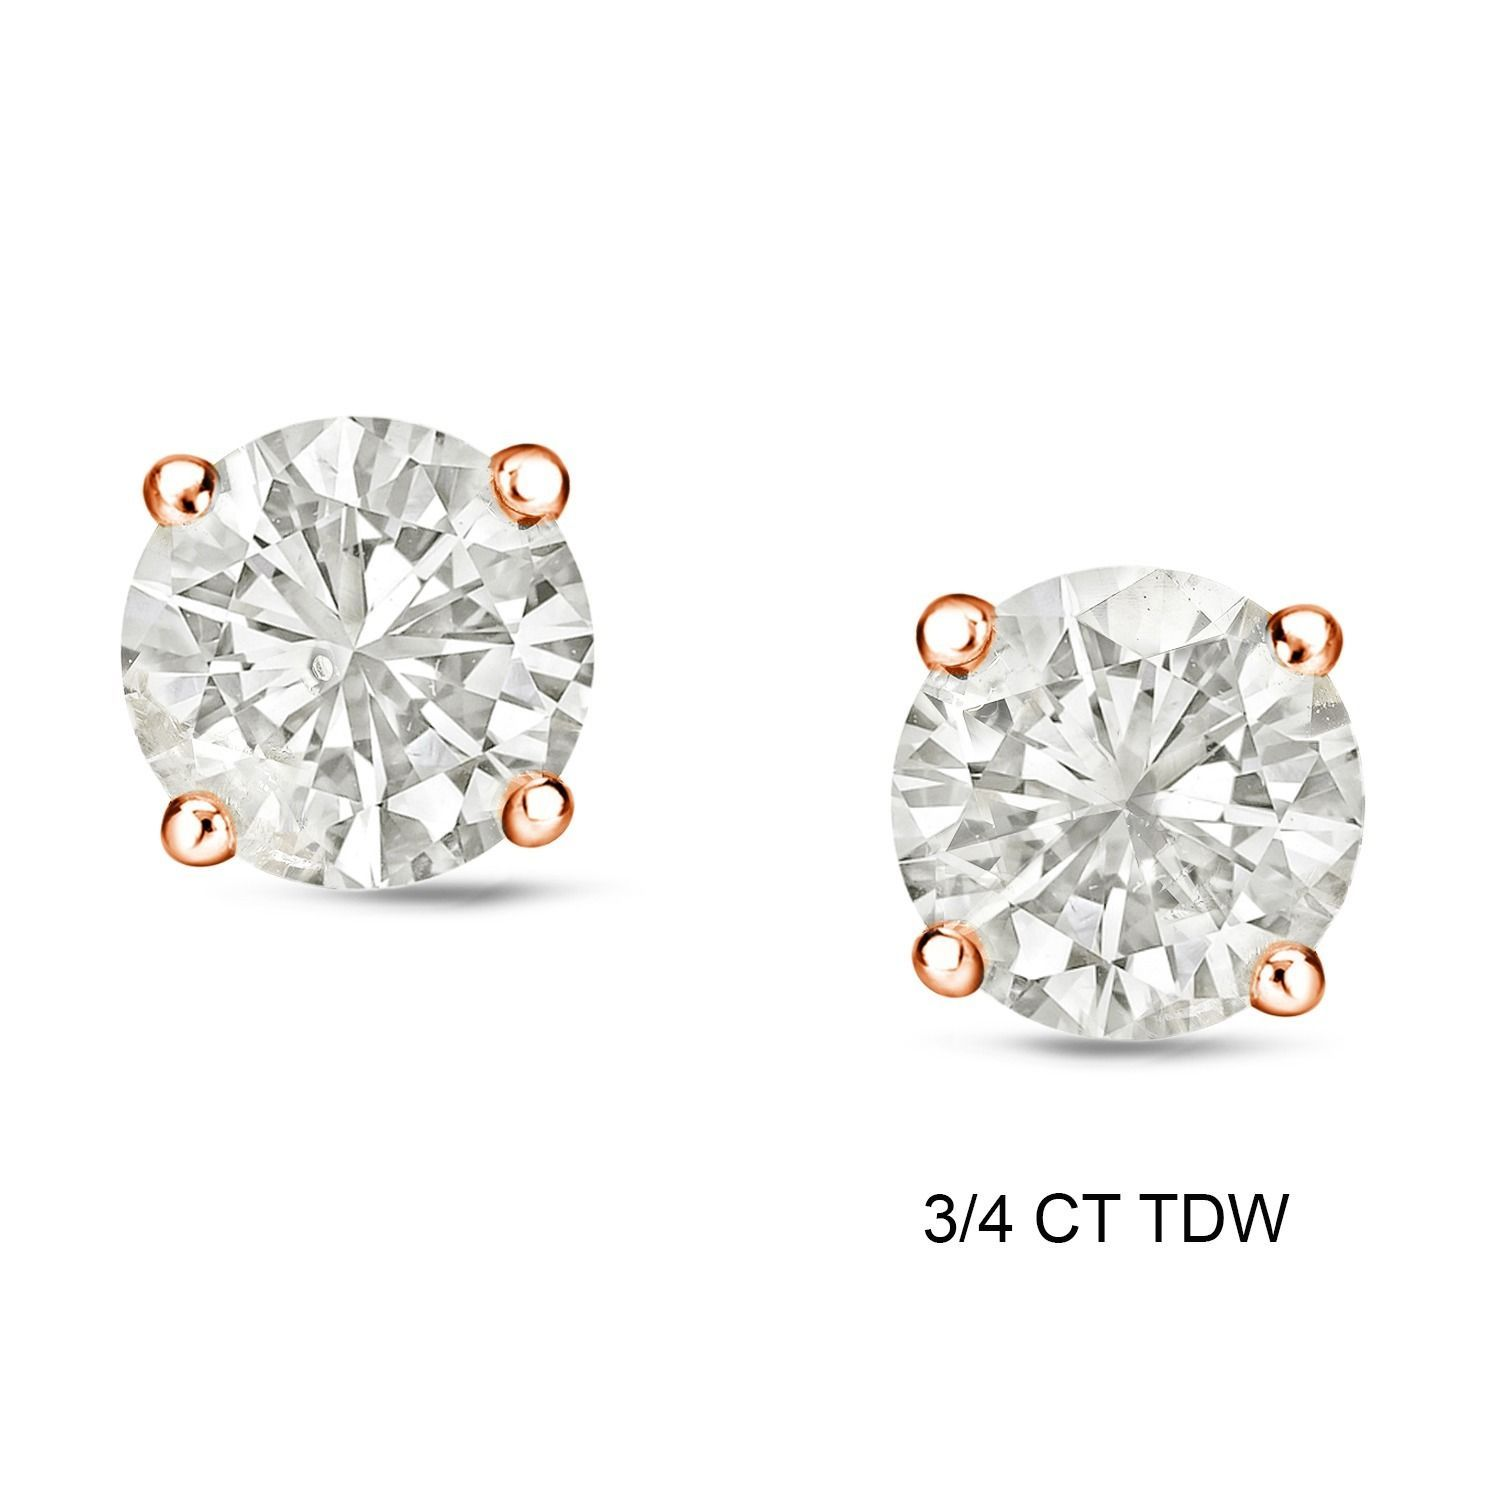 Diamond earring stud with halo I want a pair